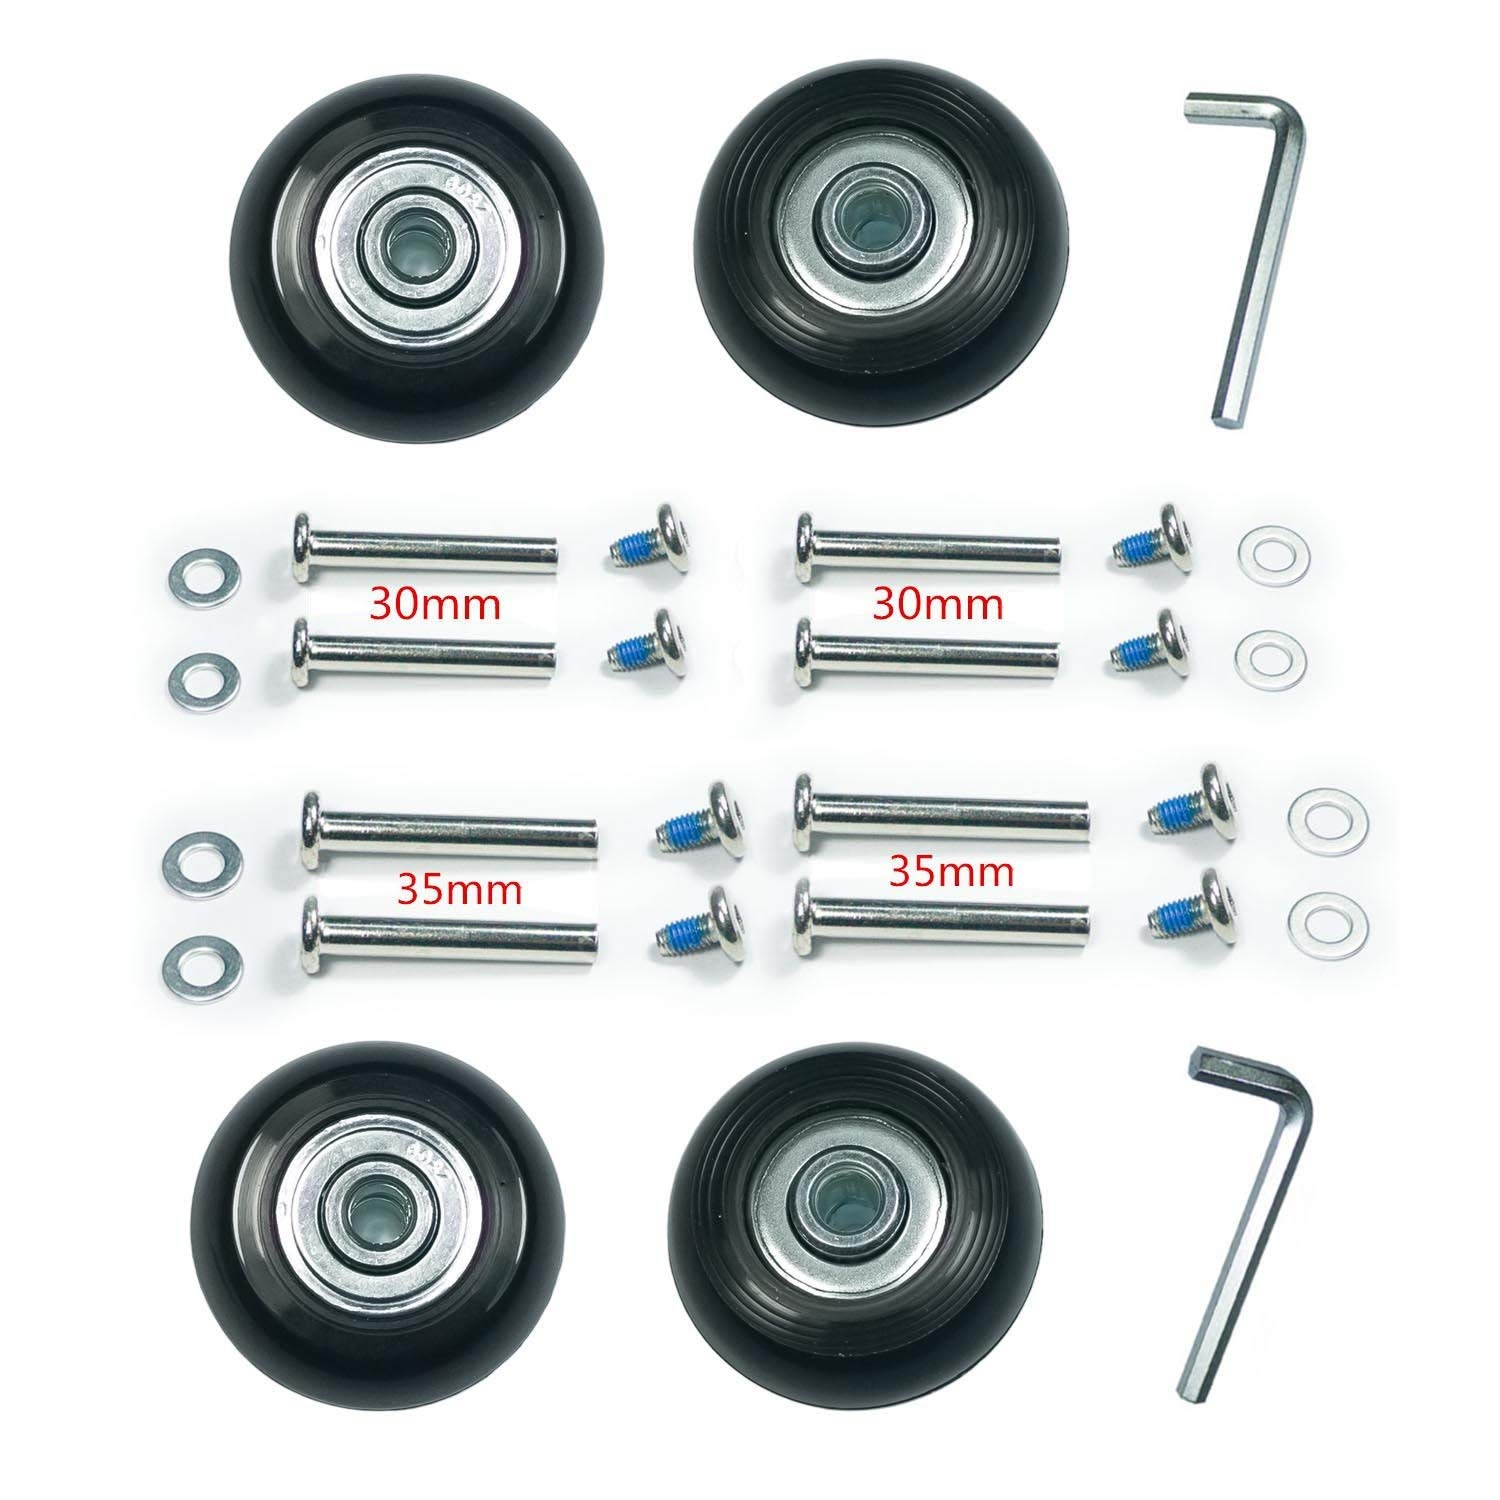 F-ber Wear-Resistant Luggage Suitcase Wheels Replacement Kit 60mm x 18mm Wheels ABEC 608zz Skate Inline Outdoor Replacement Wheels, One Set of (4) Wheels (OD:60 W:18 ID:6 Axles:30, Axles:35) by F-ber